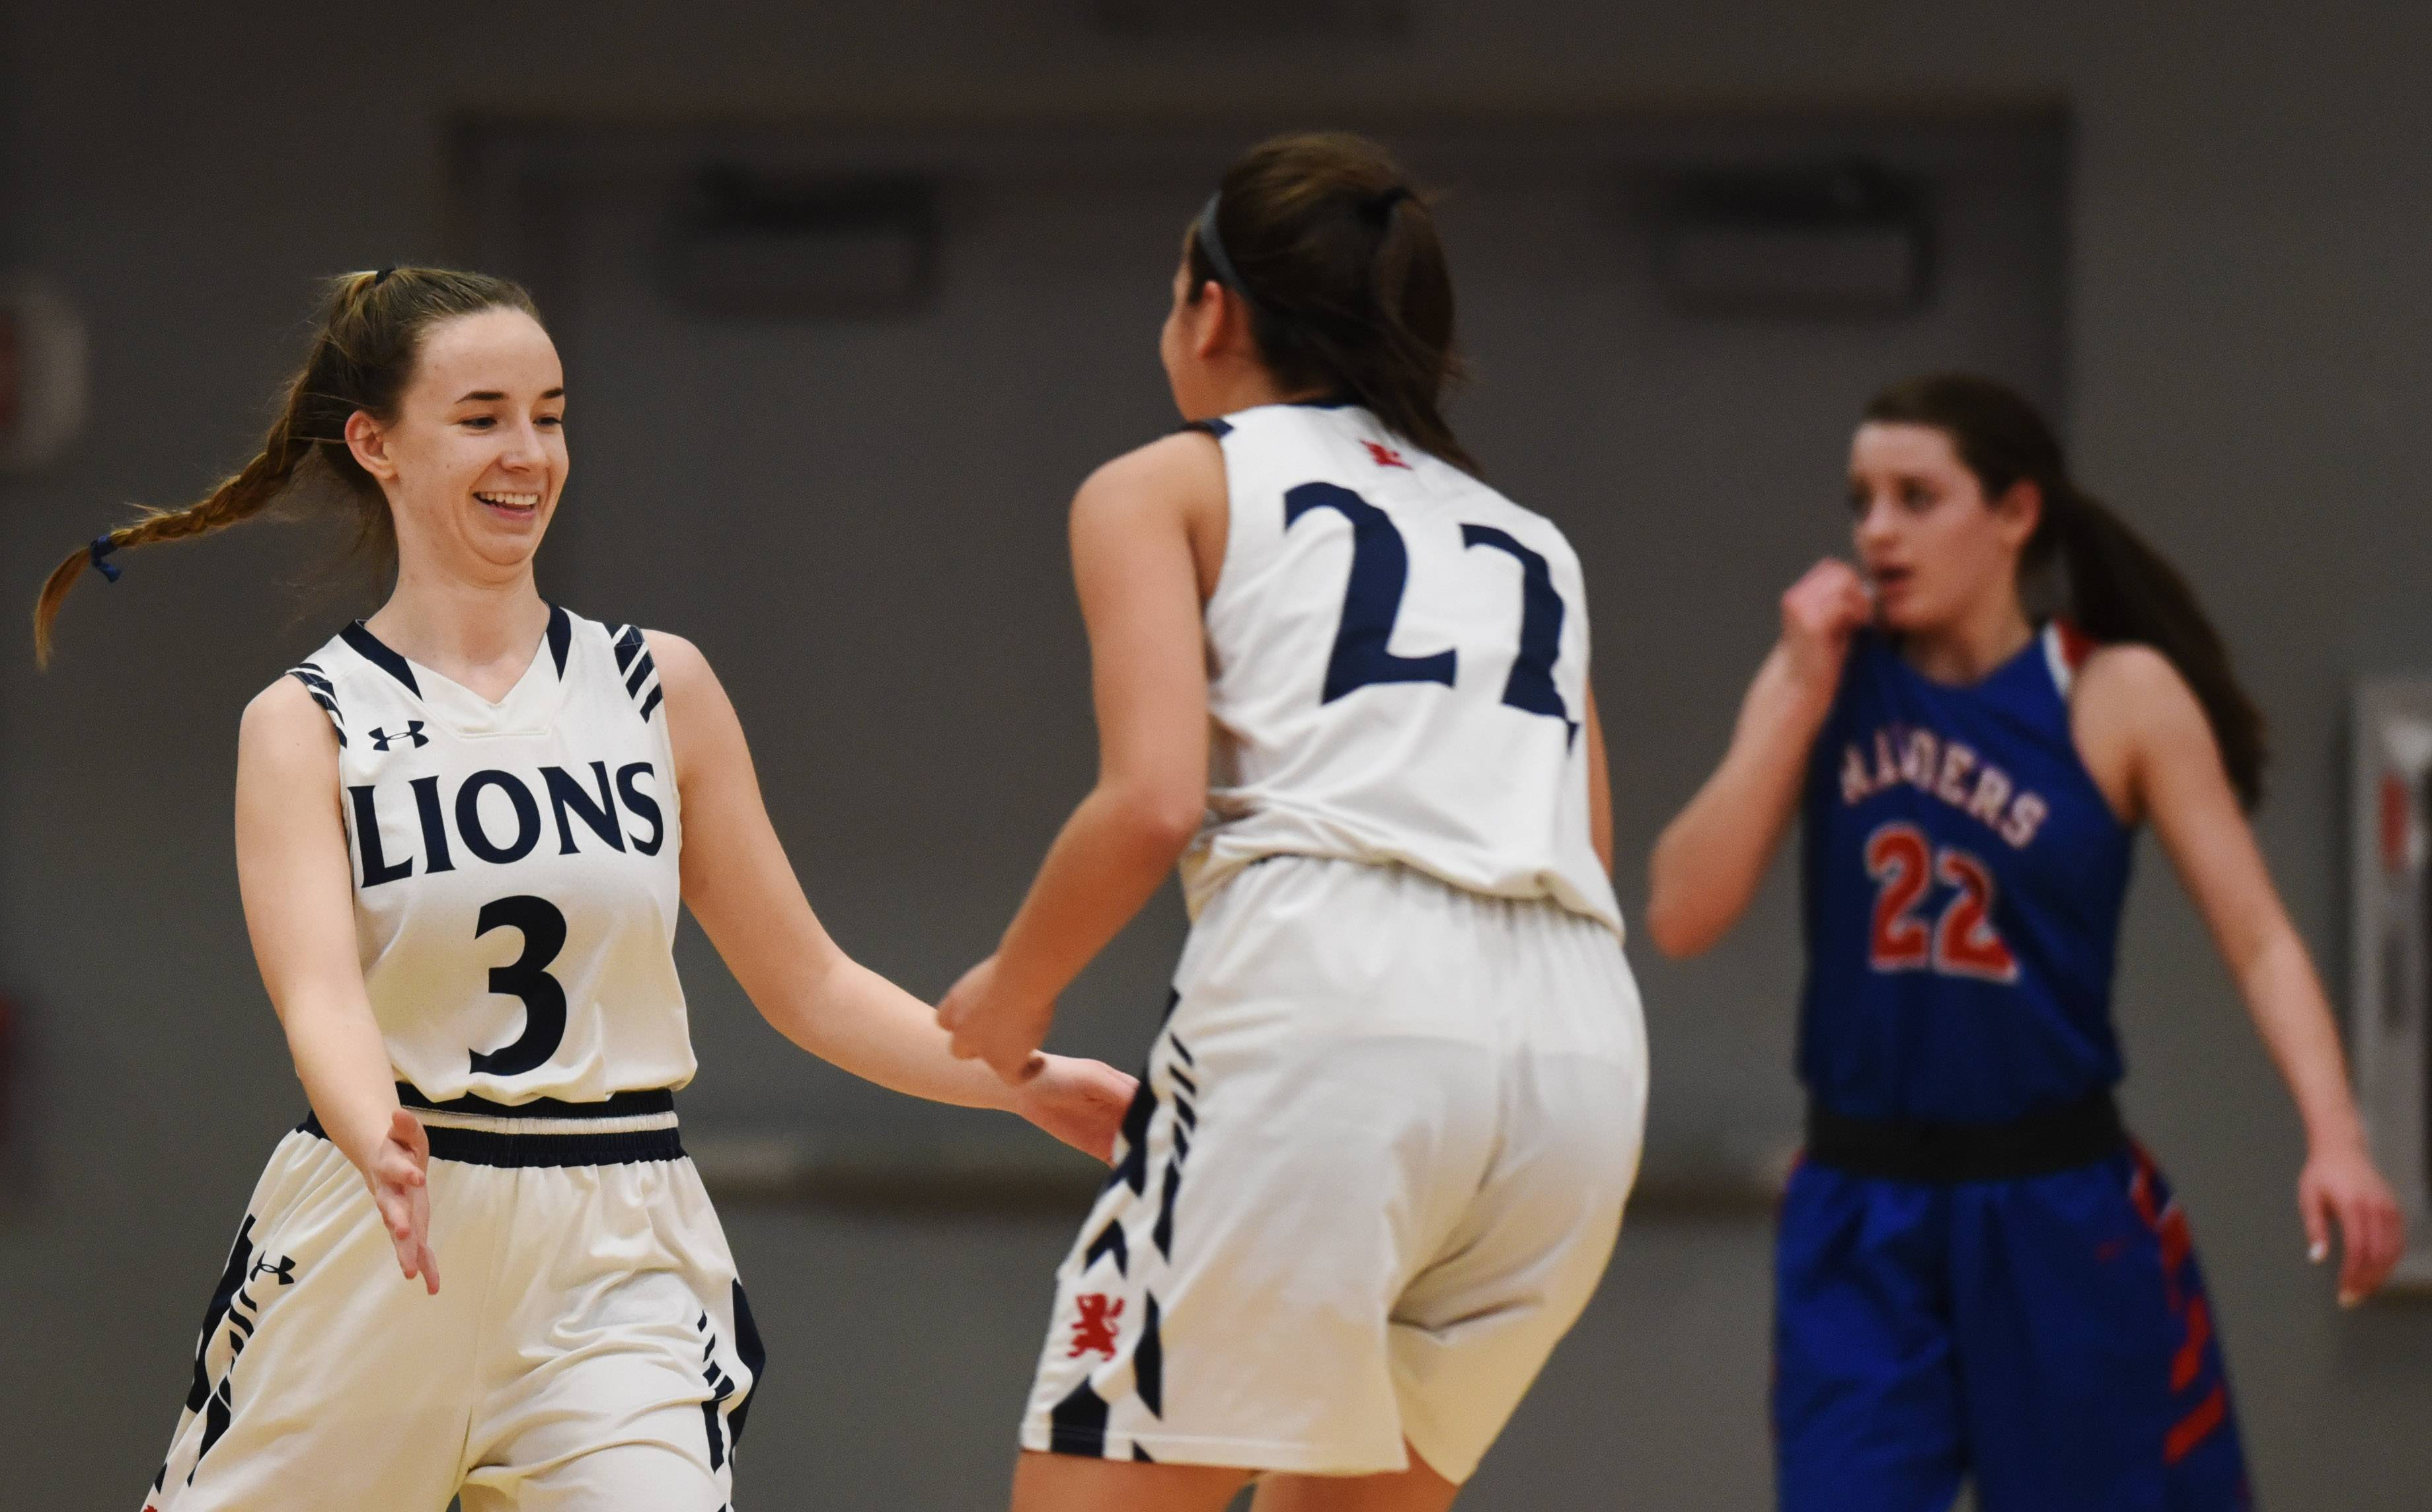 St. Viator's Natalie Krause, left, celebrates with teammate Joy Bergstrom after hitting a three-pointer to end the first quarter during the Class 3A girls baskeball supersectional against Glenbard South at Elgin Community College Monday.